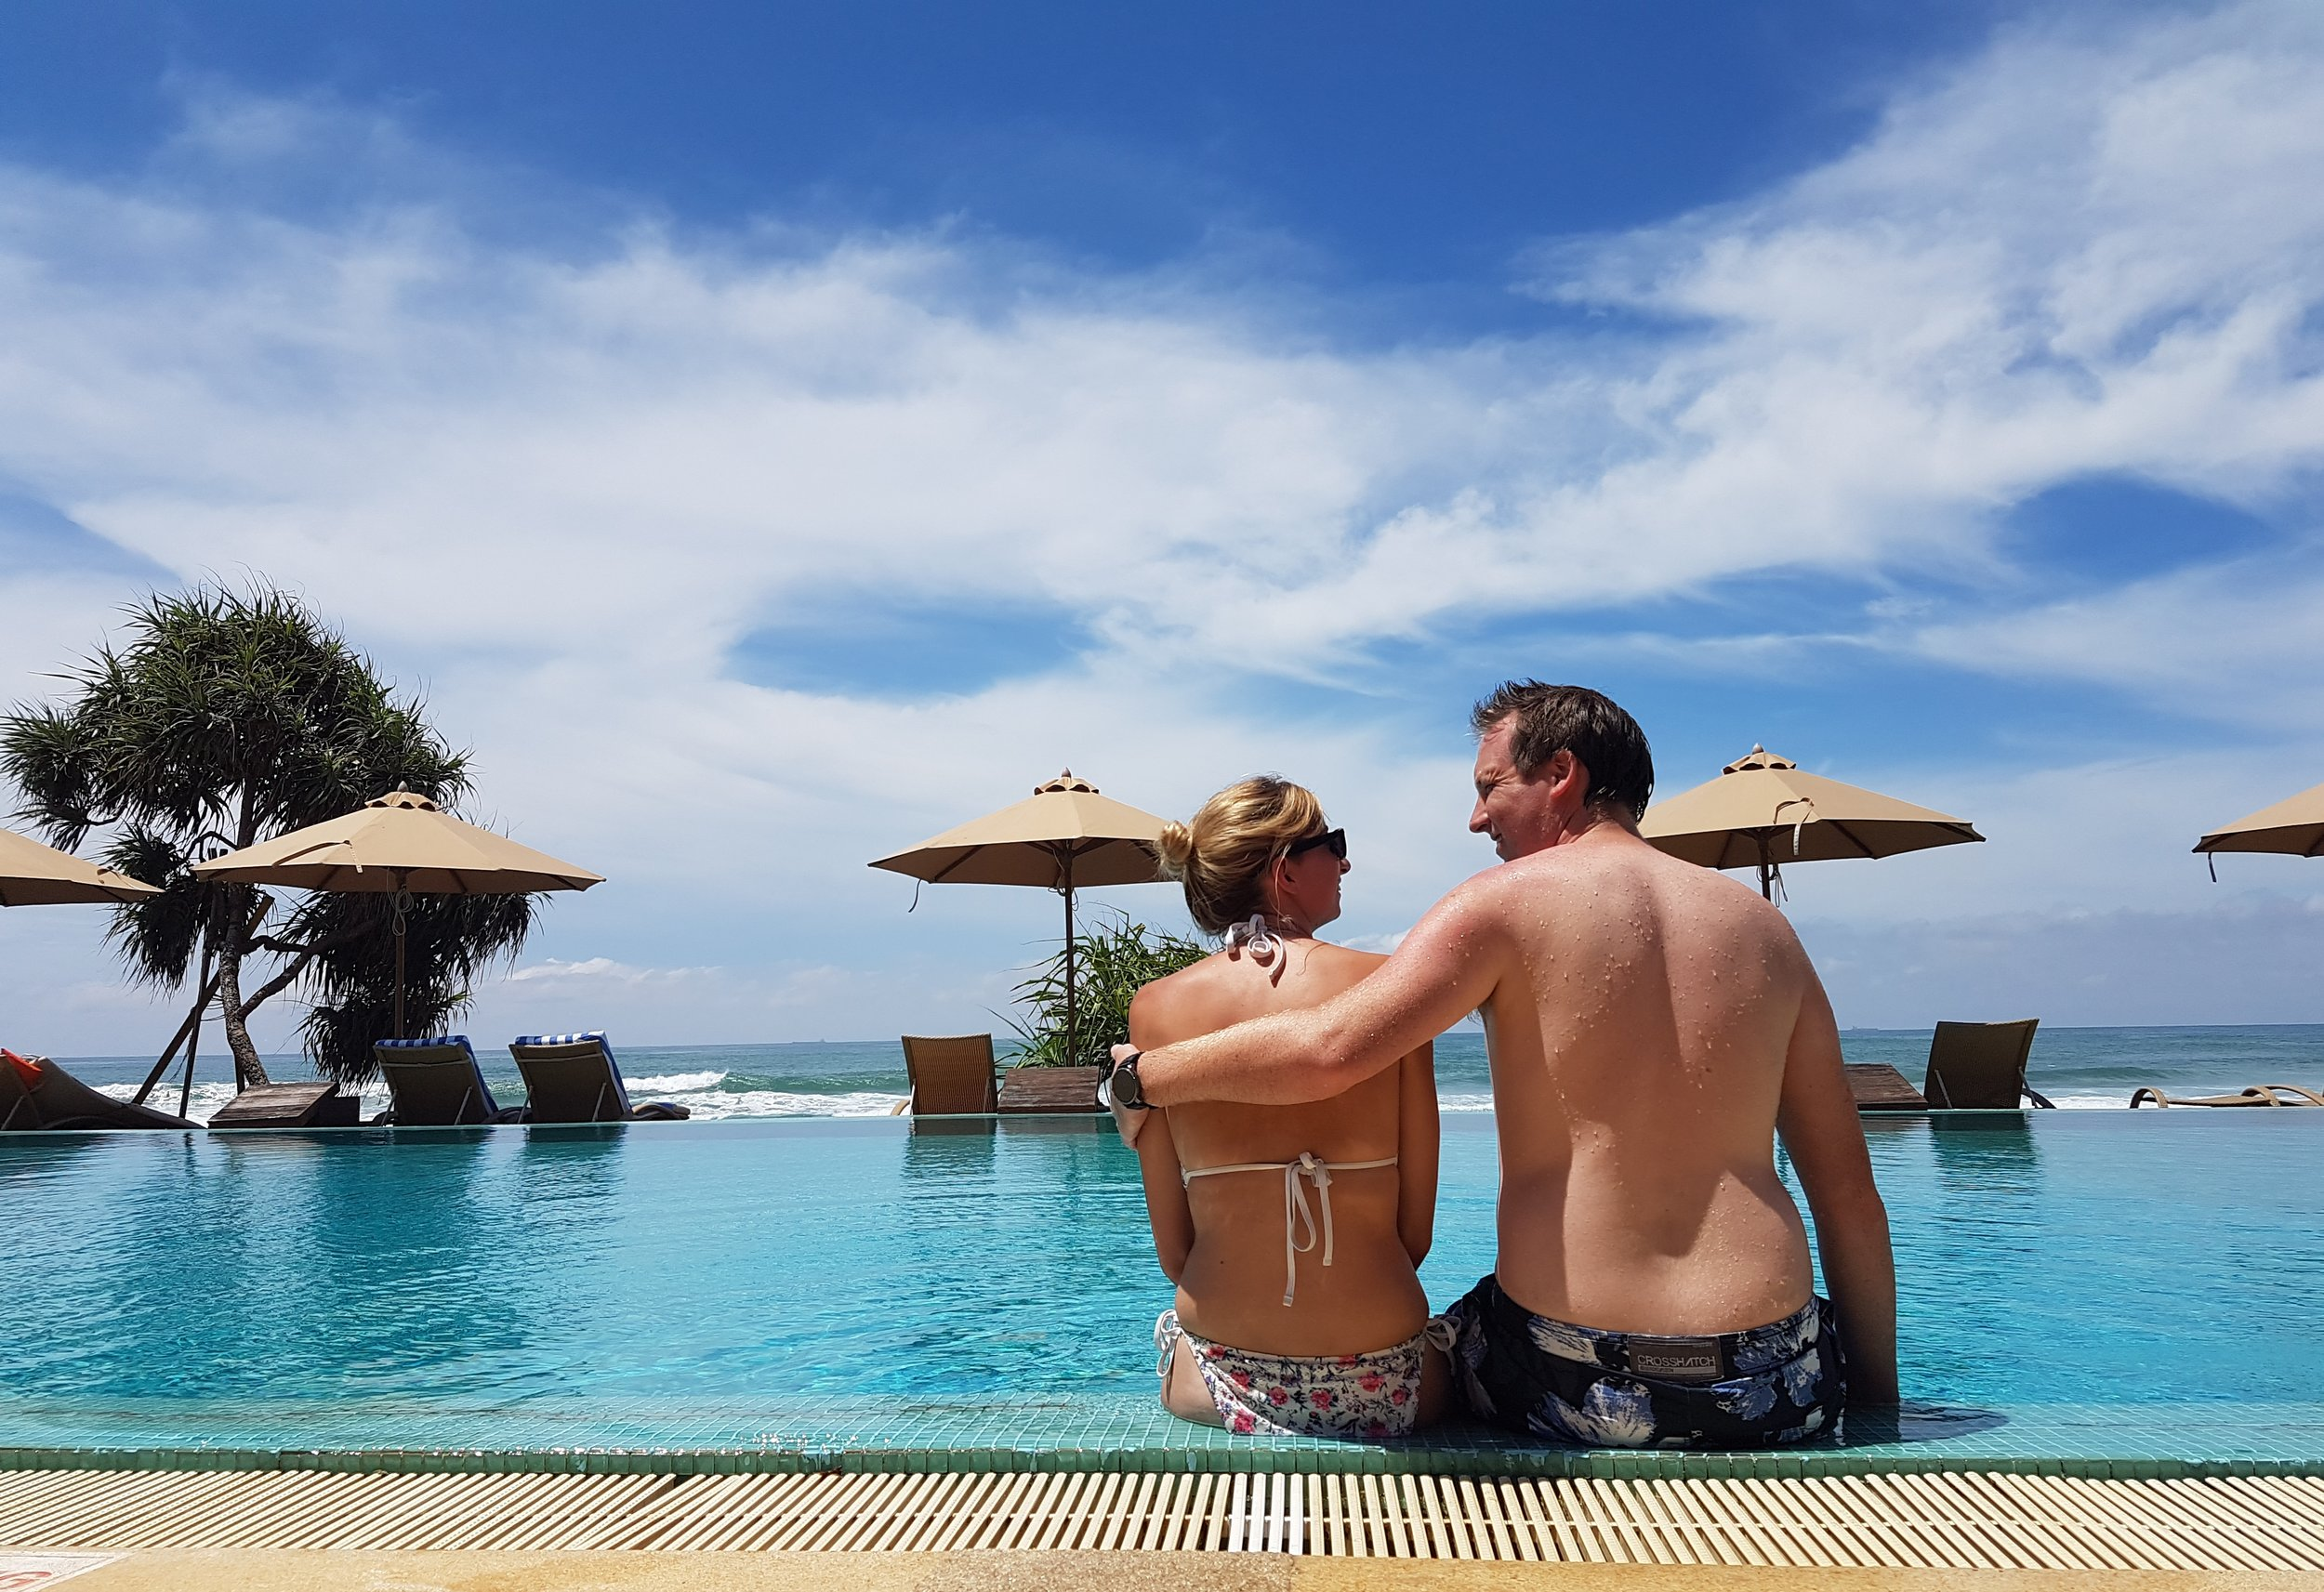 invite-to-paradise-sri-lanka-holiday-honeymoon-specialists-customer-feedback-fleur-simon-minshull-the-fortress-galle-pool-couple-relax.jpg